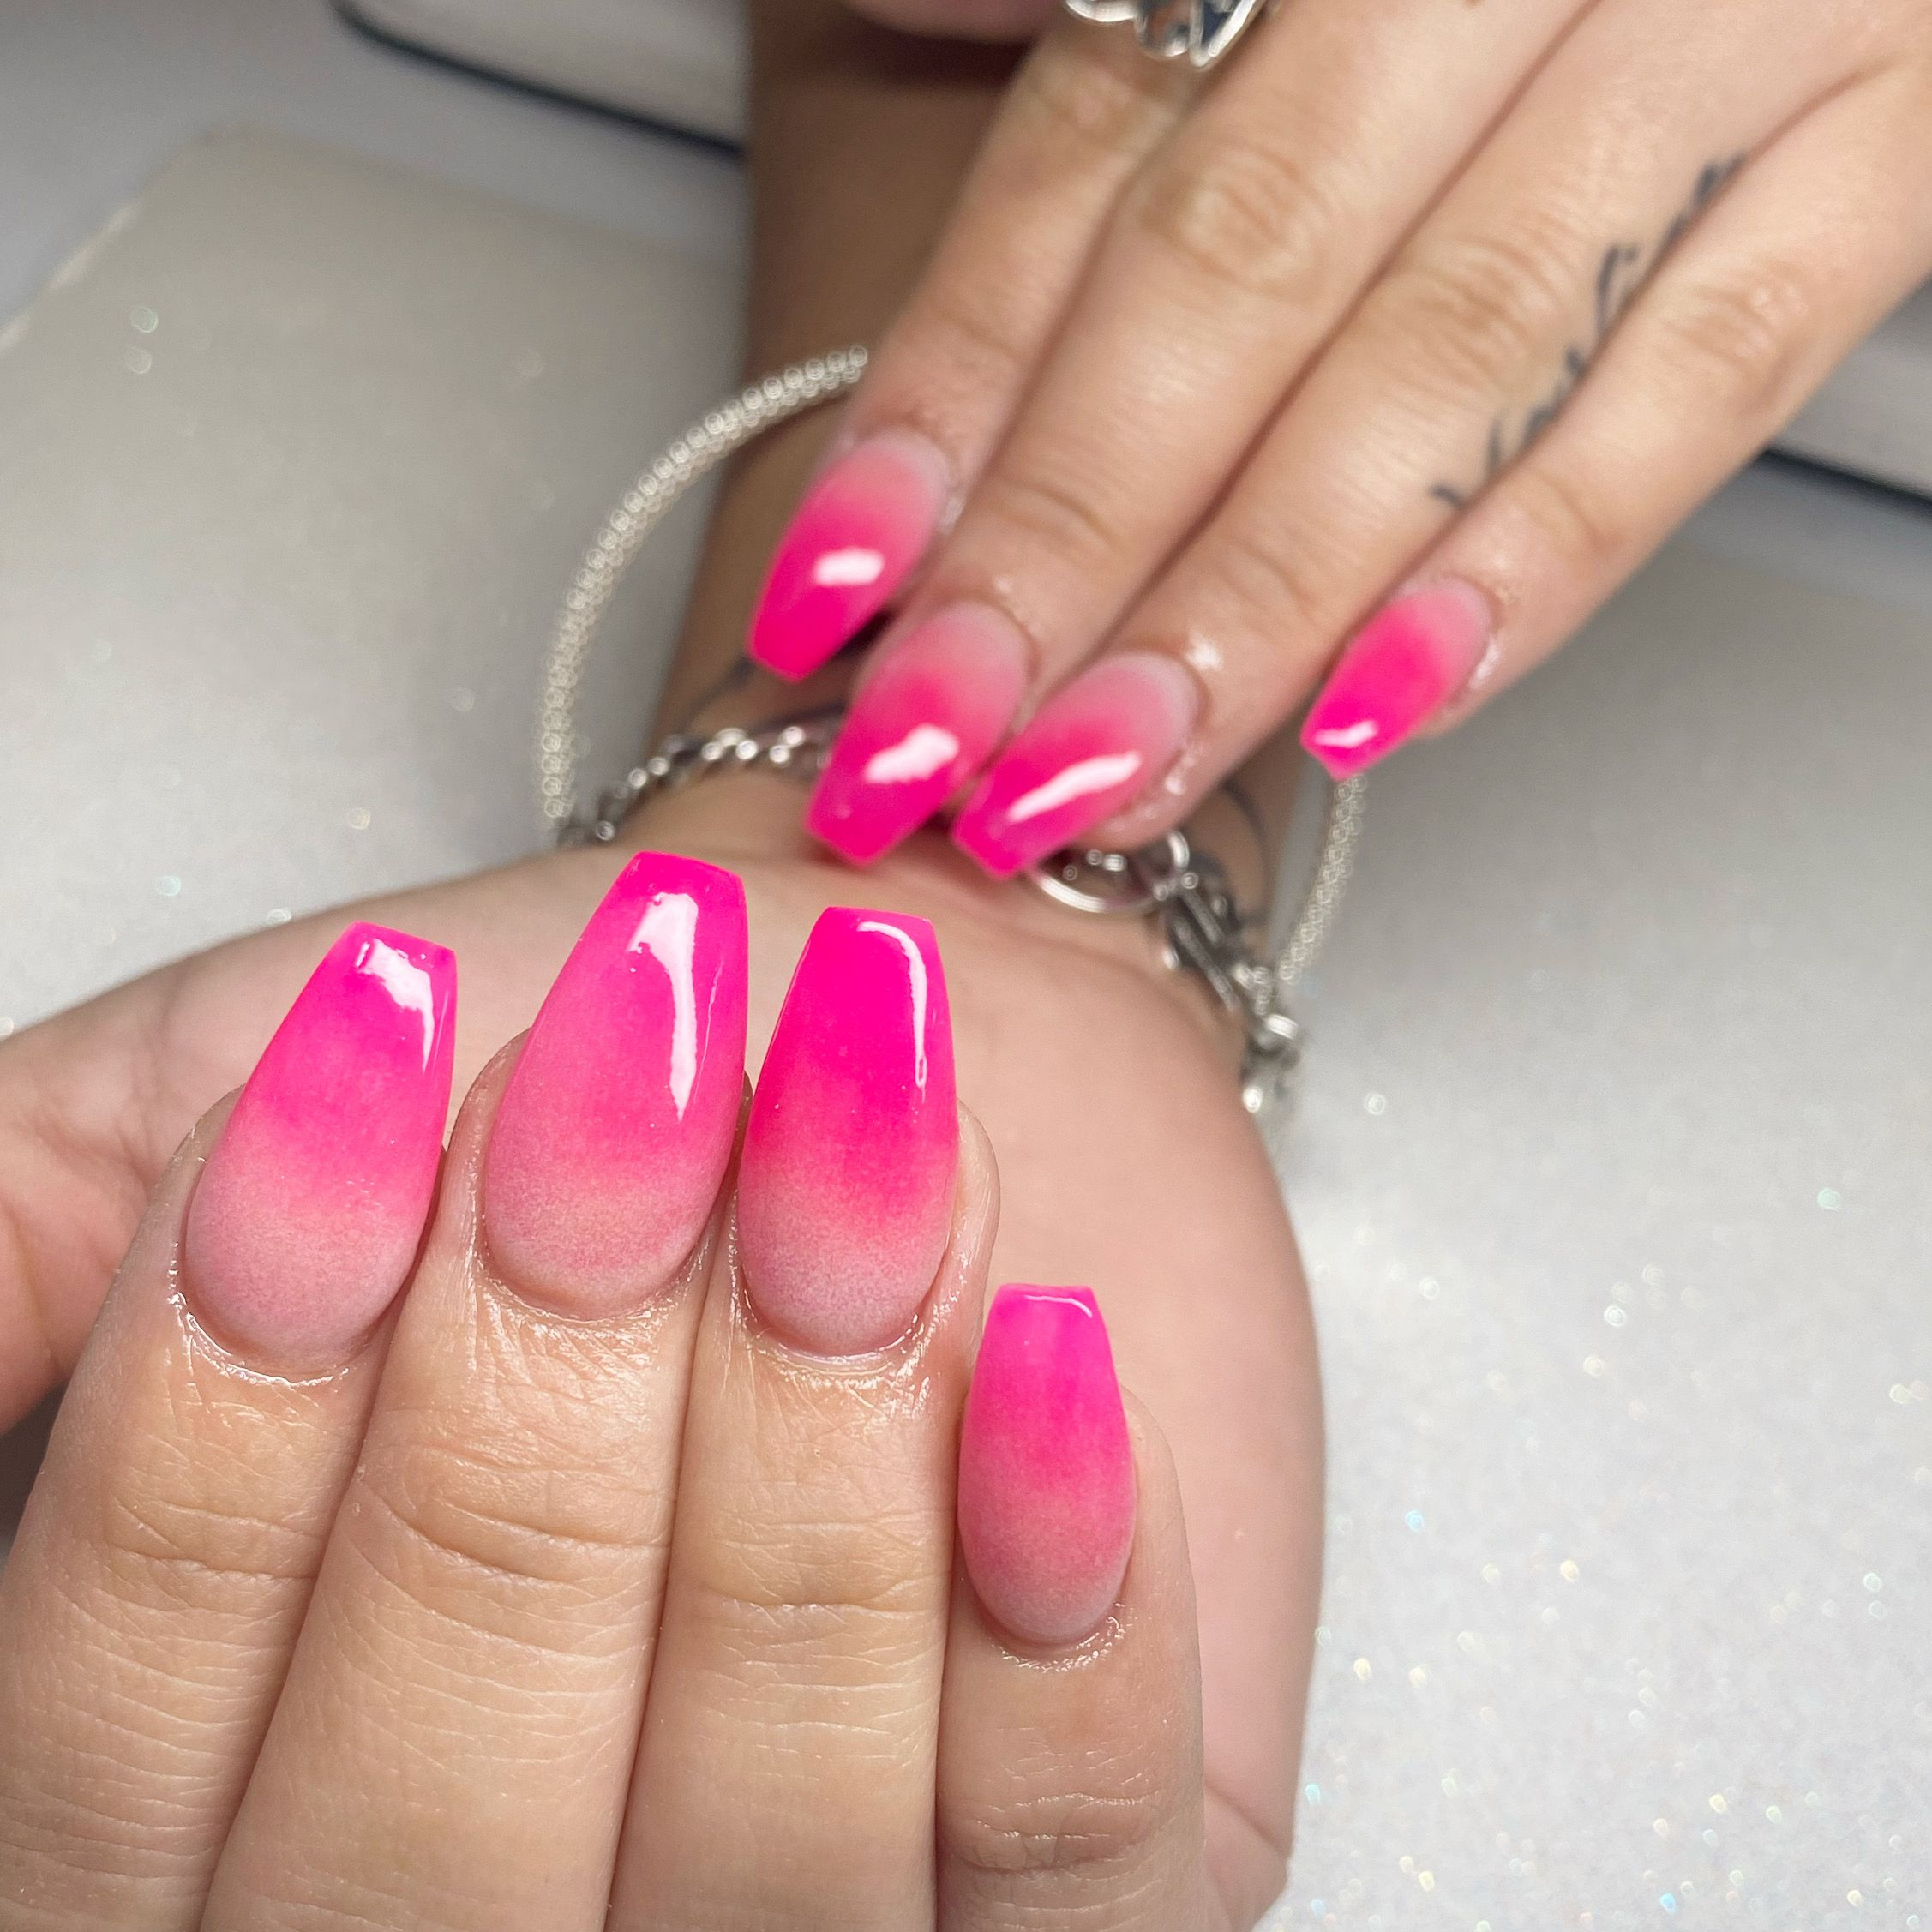 Ombre Nails In 2020 Ombre Nails Nail Polish Nail Services